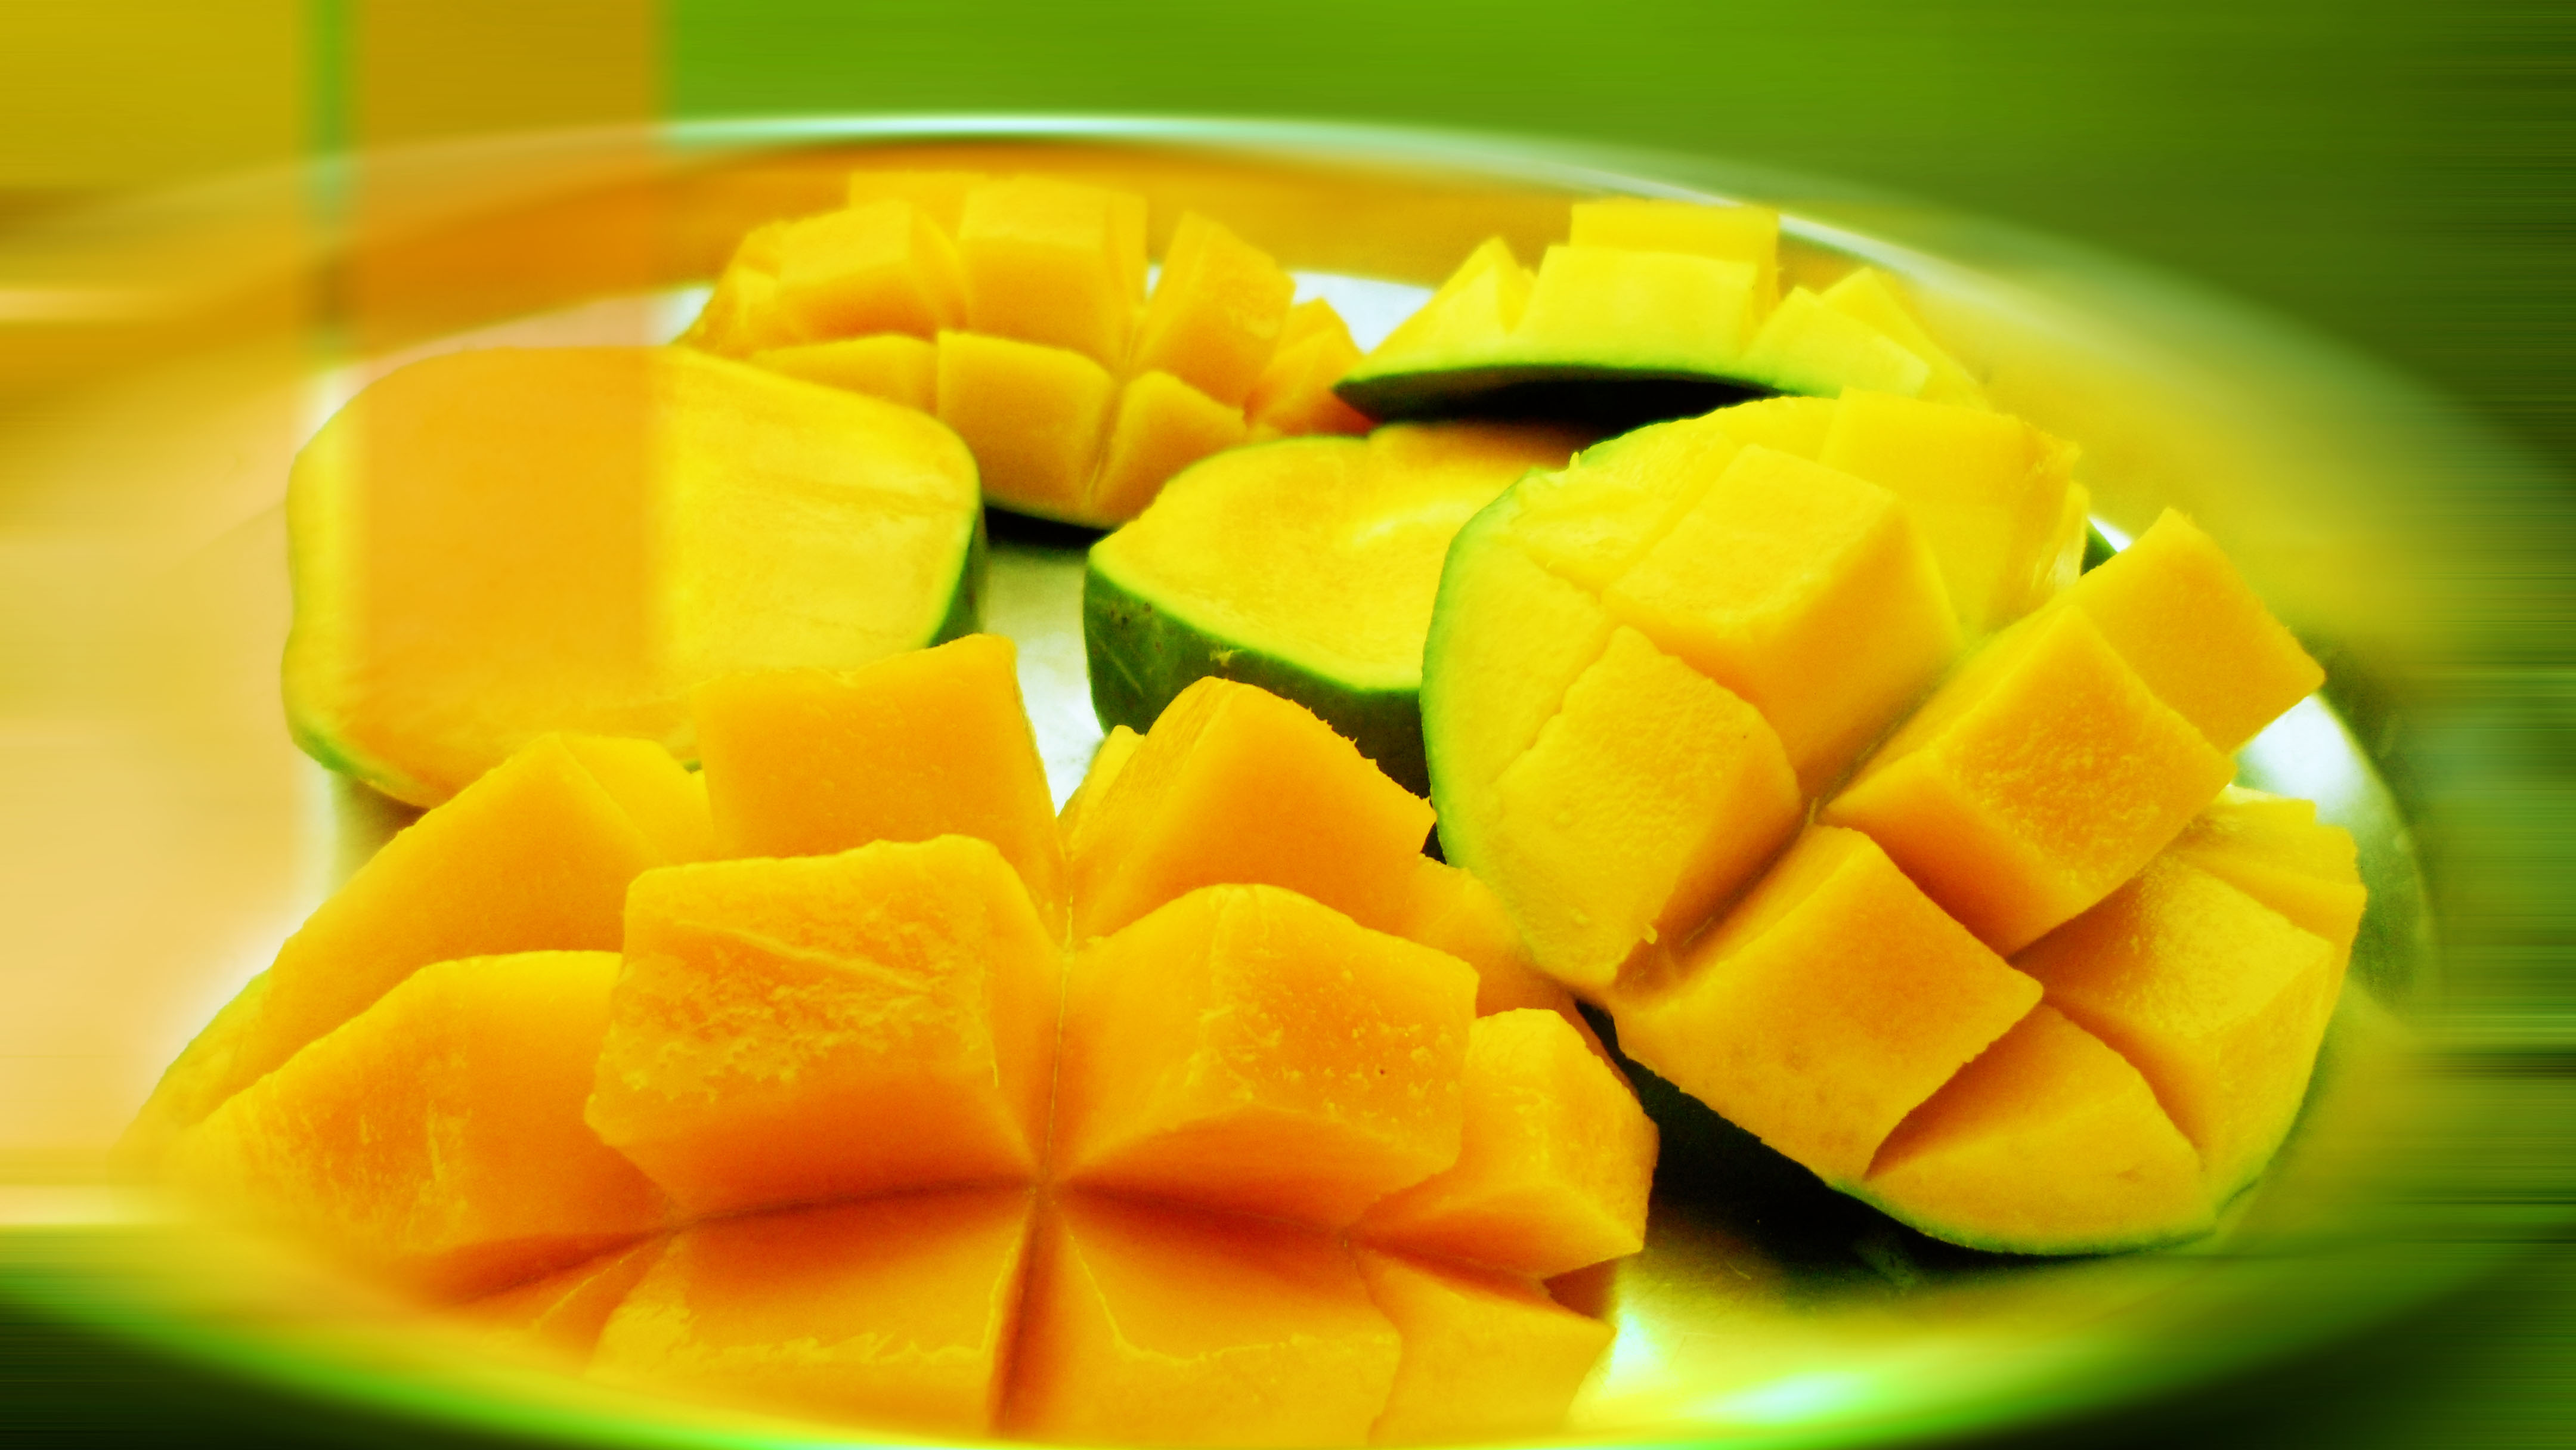 22 Mango HD Wallpapers Background Images 4320x2432